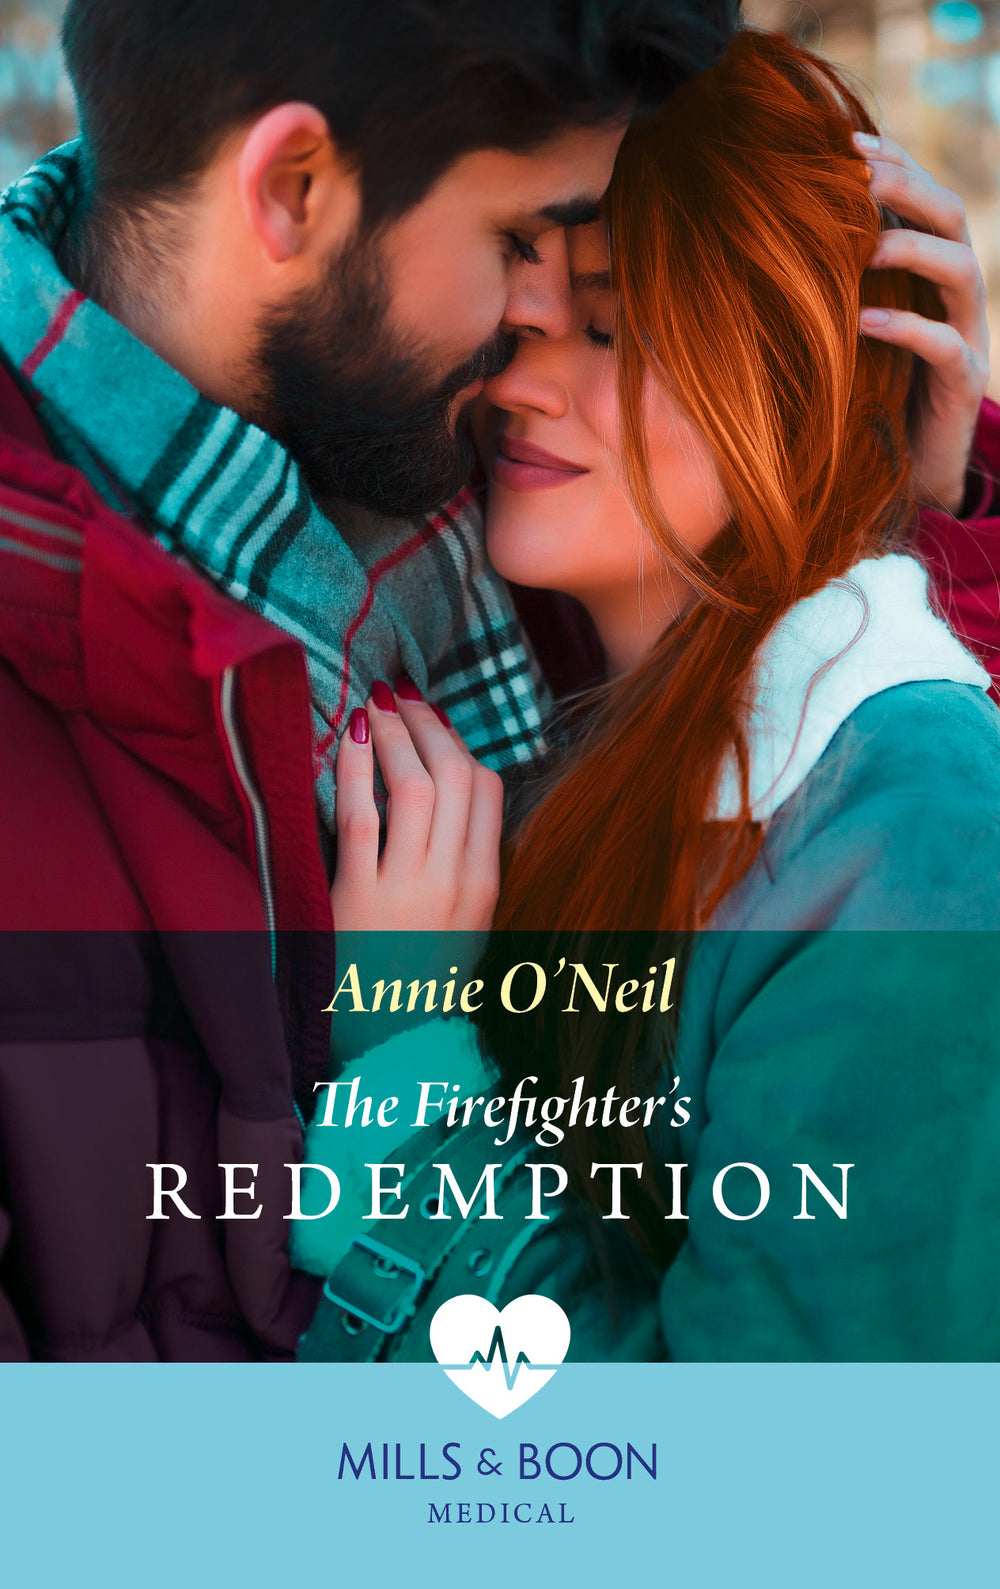 The Firefighter's Redemption - Chapter 11